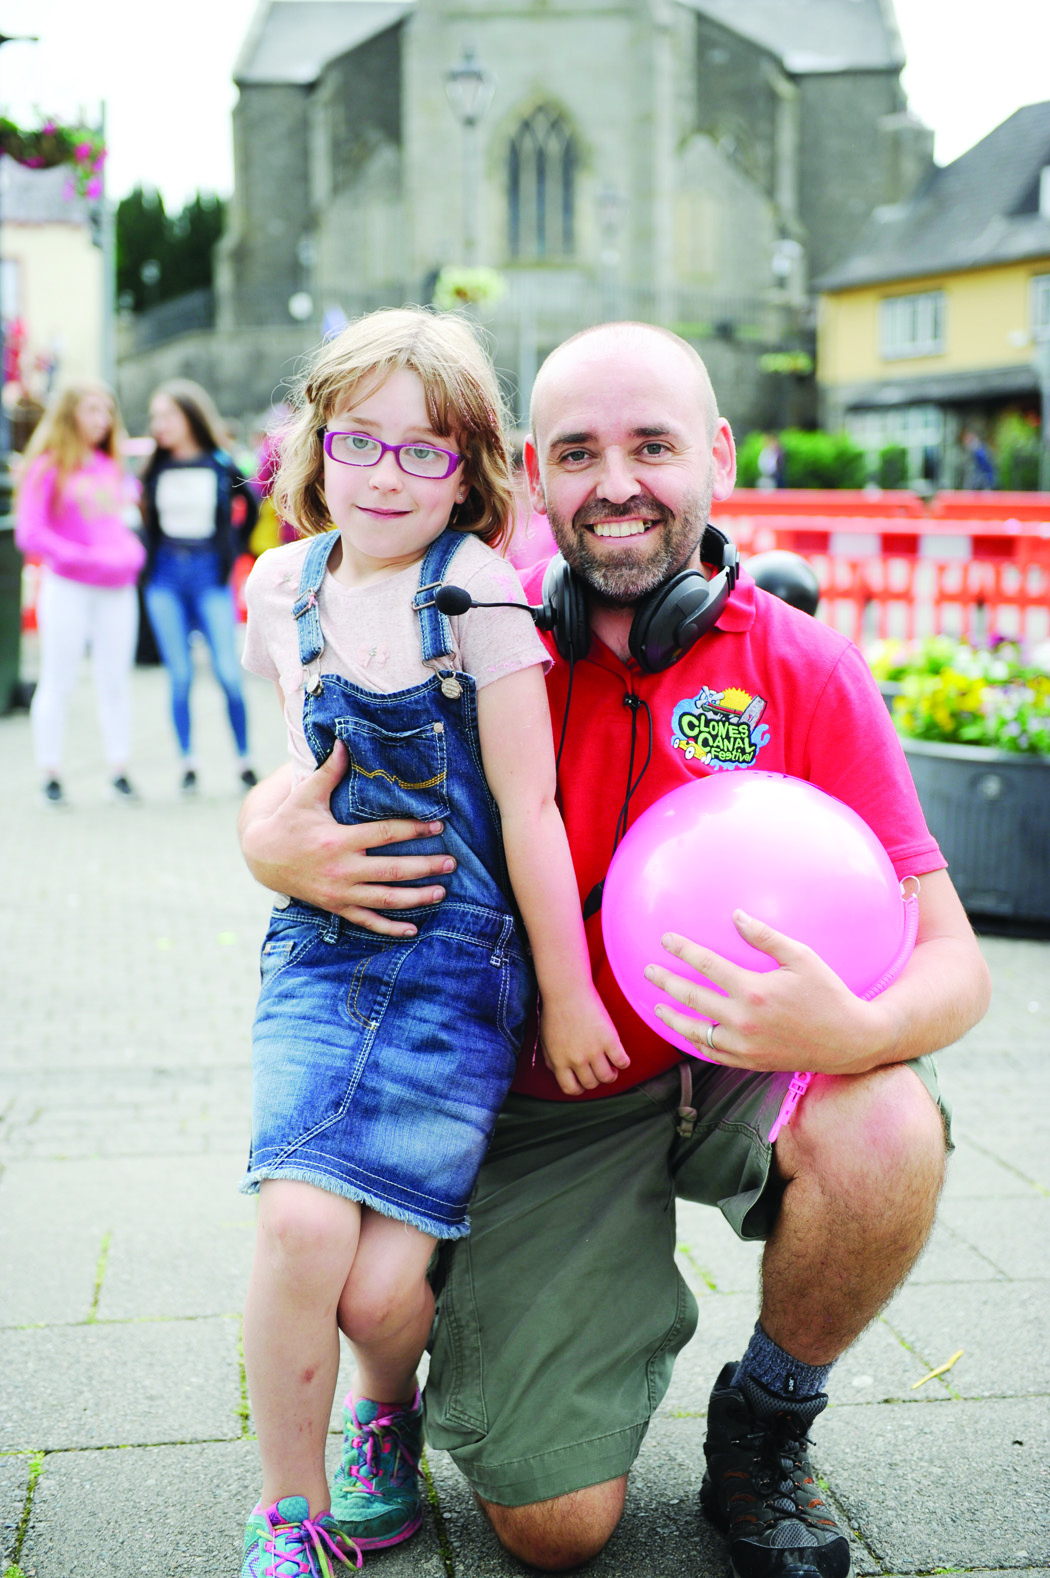 Emma Dunwoody who celebrated her 8th birthday at the Clones Canal Festival, with her father Finbarr. ©Rory Geary/The Northern Standard